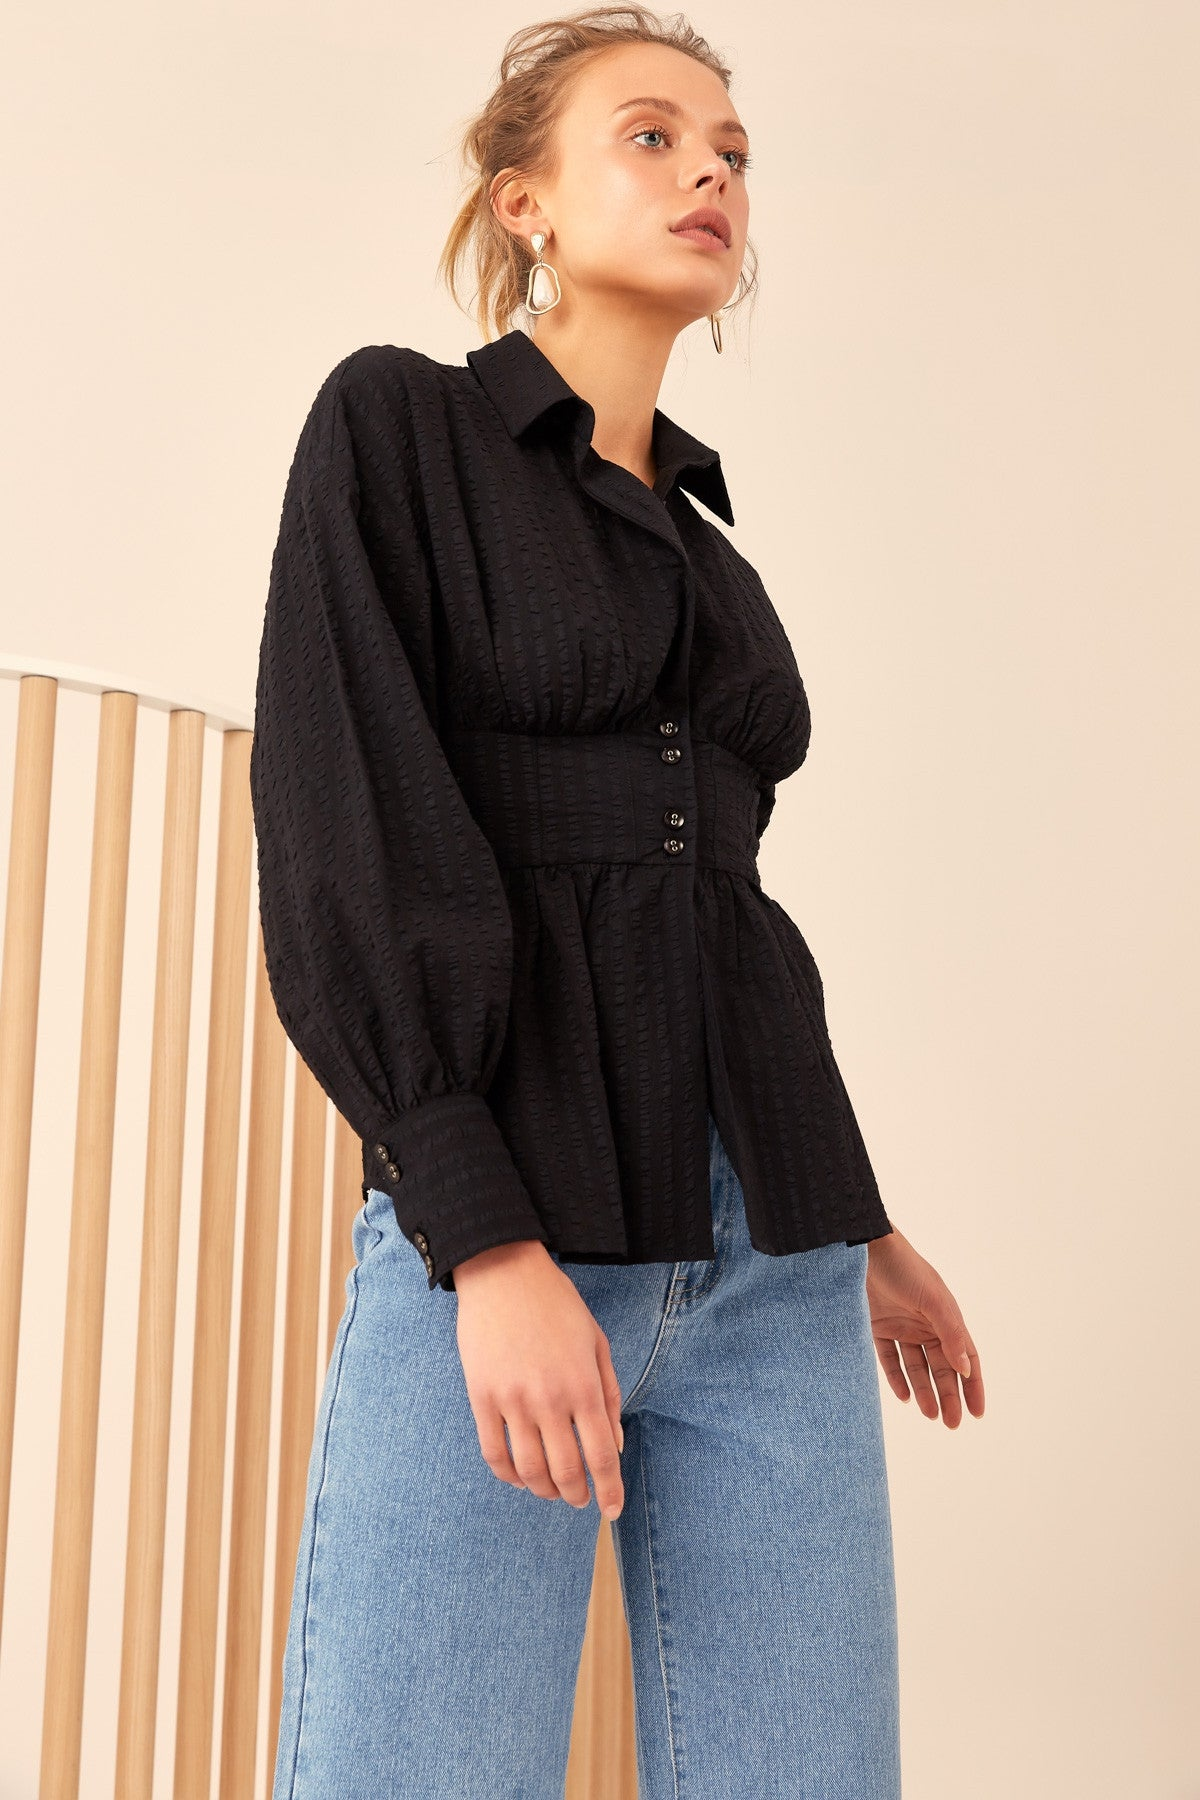 REFORM LONG SLEEVE TOP black